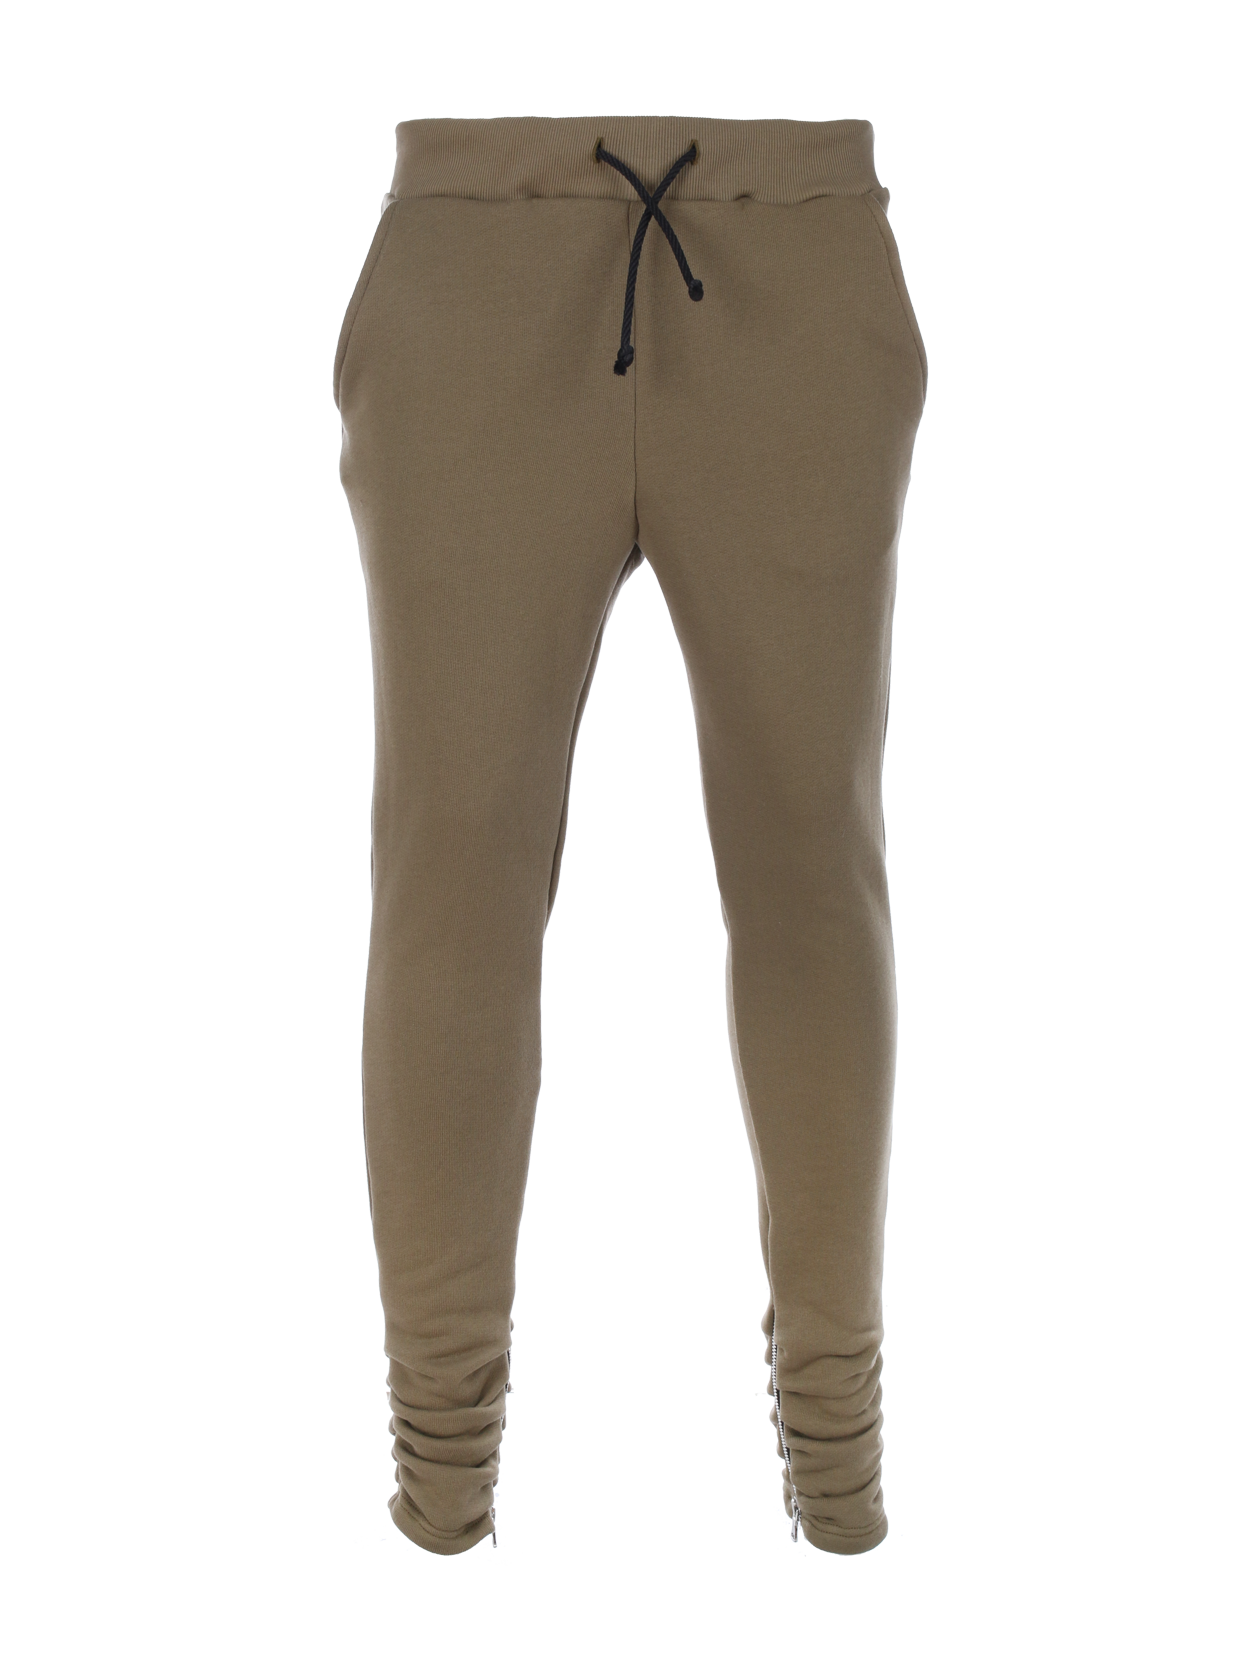 Unisex Pants Black Star ZipMens joggers by Black Star Wear. Slim fit, elastic band on waiste, side pockets, zips, 100% natural cotton. Perfect for everyday and sport activities. Avaliable in khaki and black.<br><br>size: S<br>color: Khaki<br>gender: female